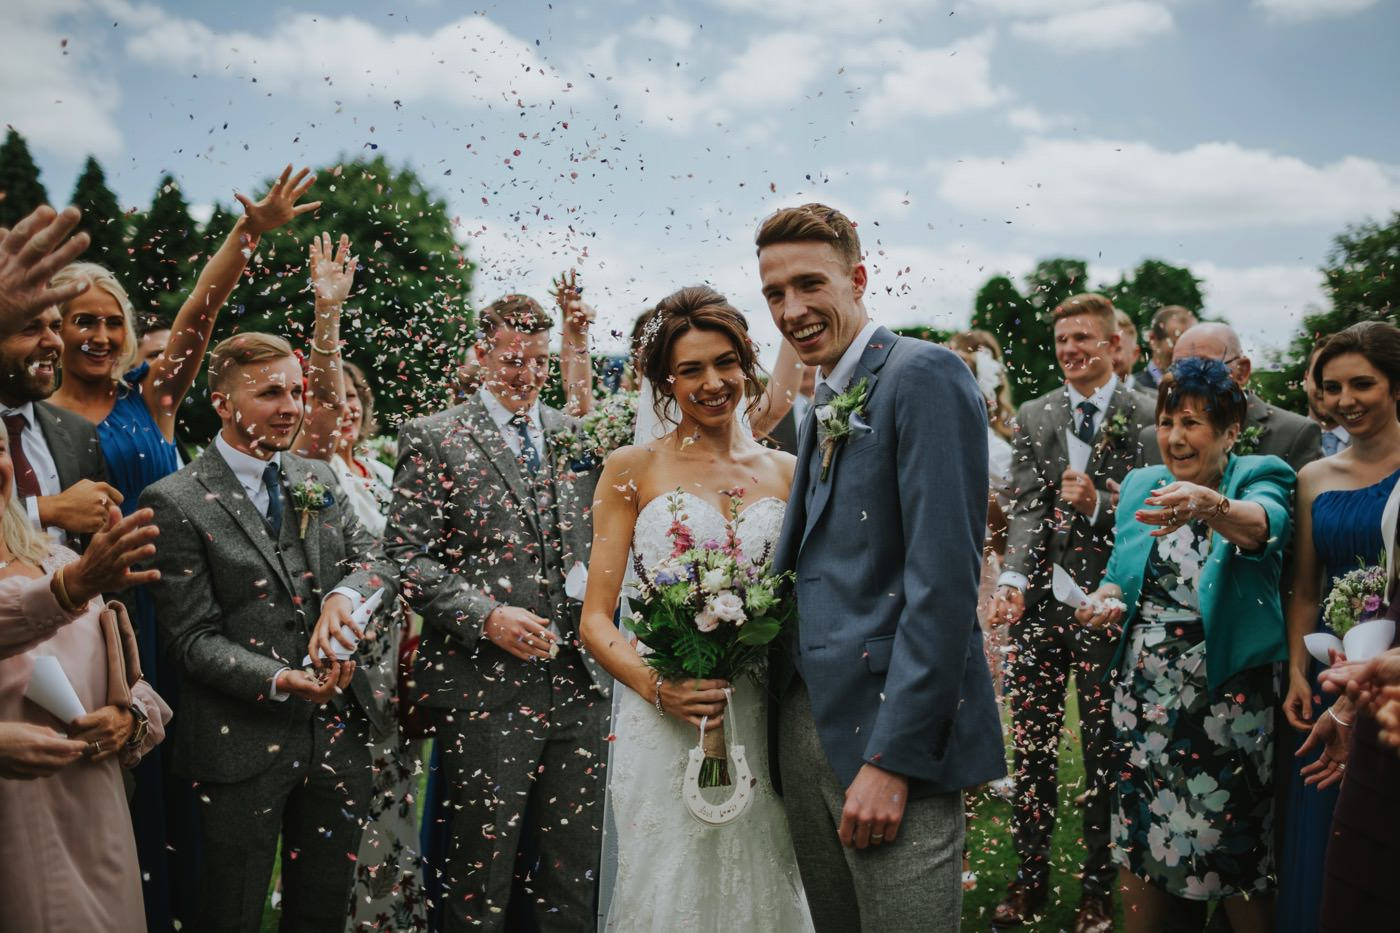 Matt & Emma | Hooton Pagnell Hall & Stable Arches 57